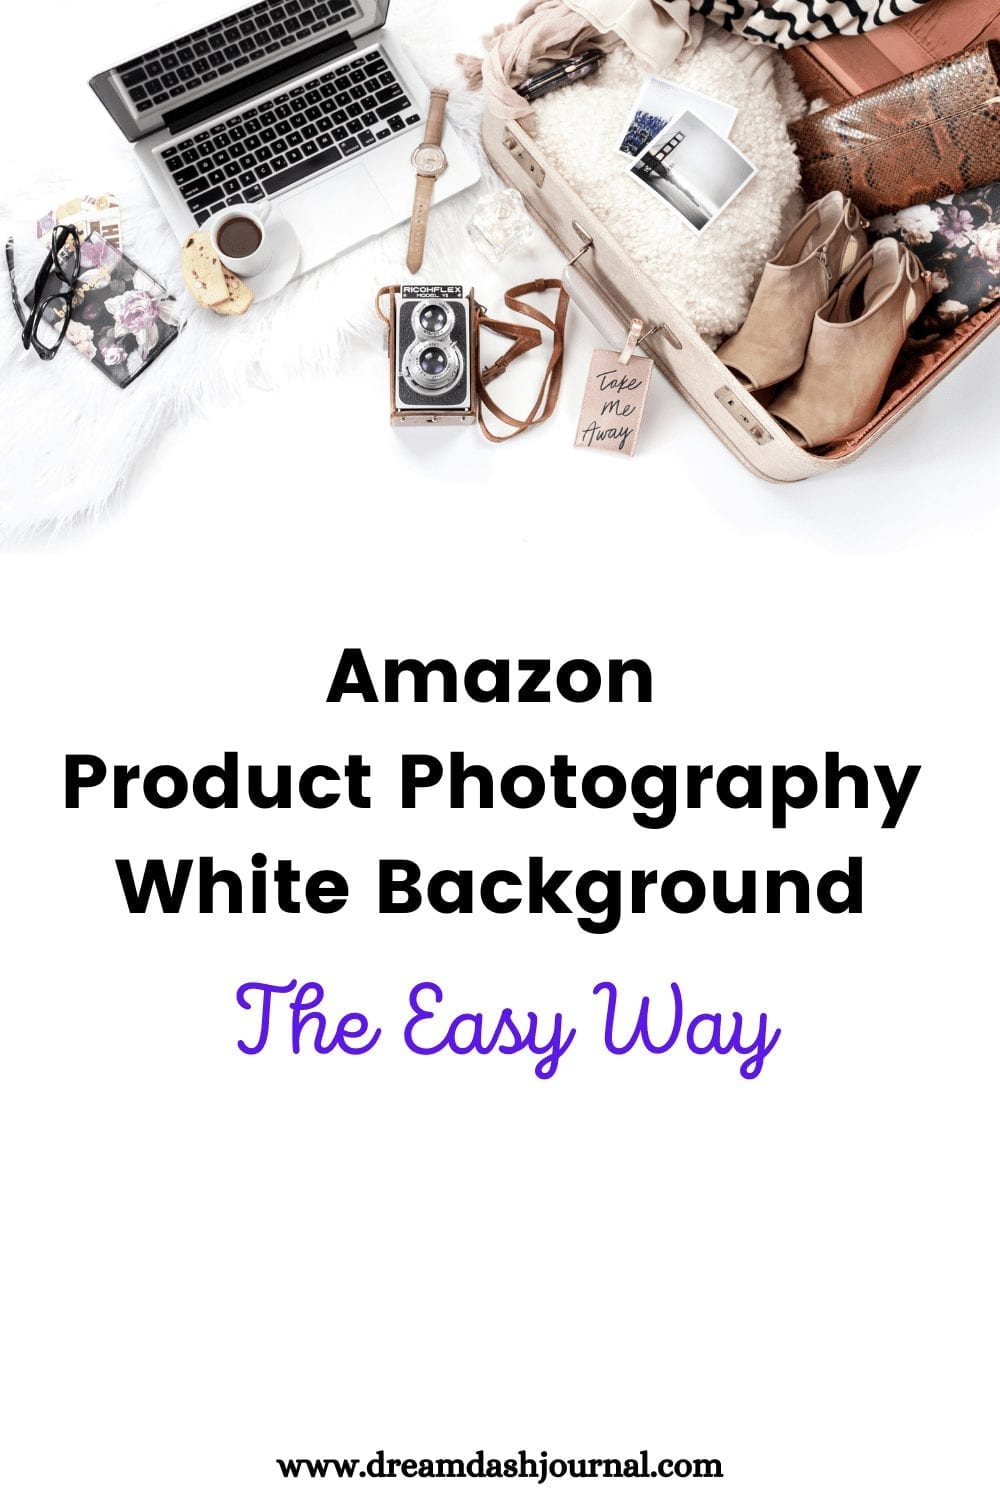 Amazon Product Photography the Easy Way, No Photoshop Skills Required